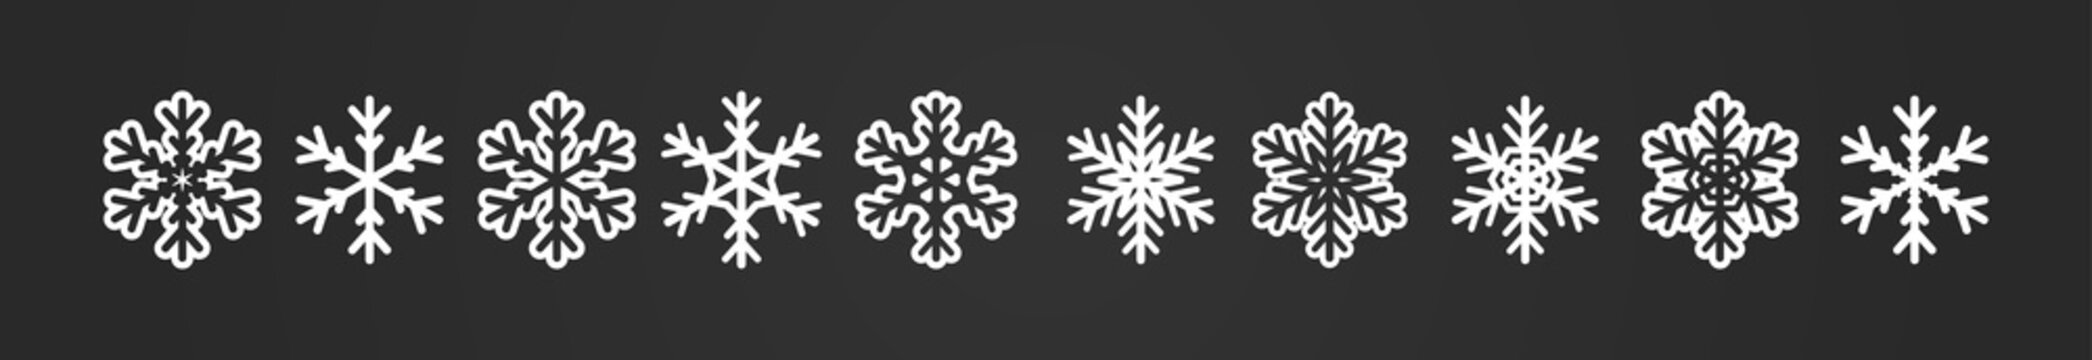 Big winter banner with snowflakes row. Geometric icons collection